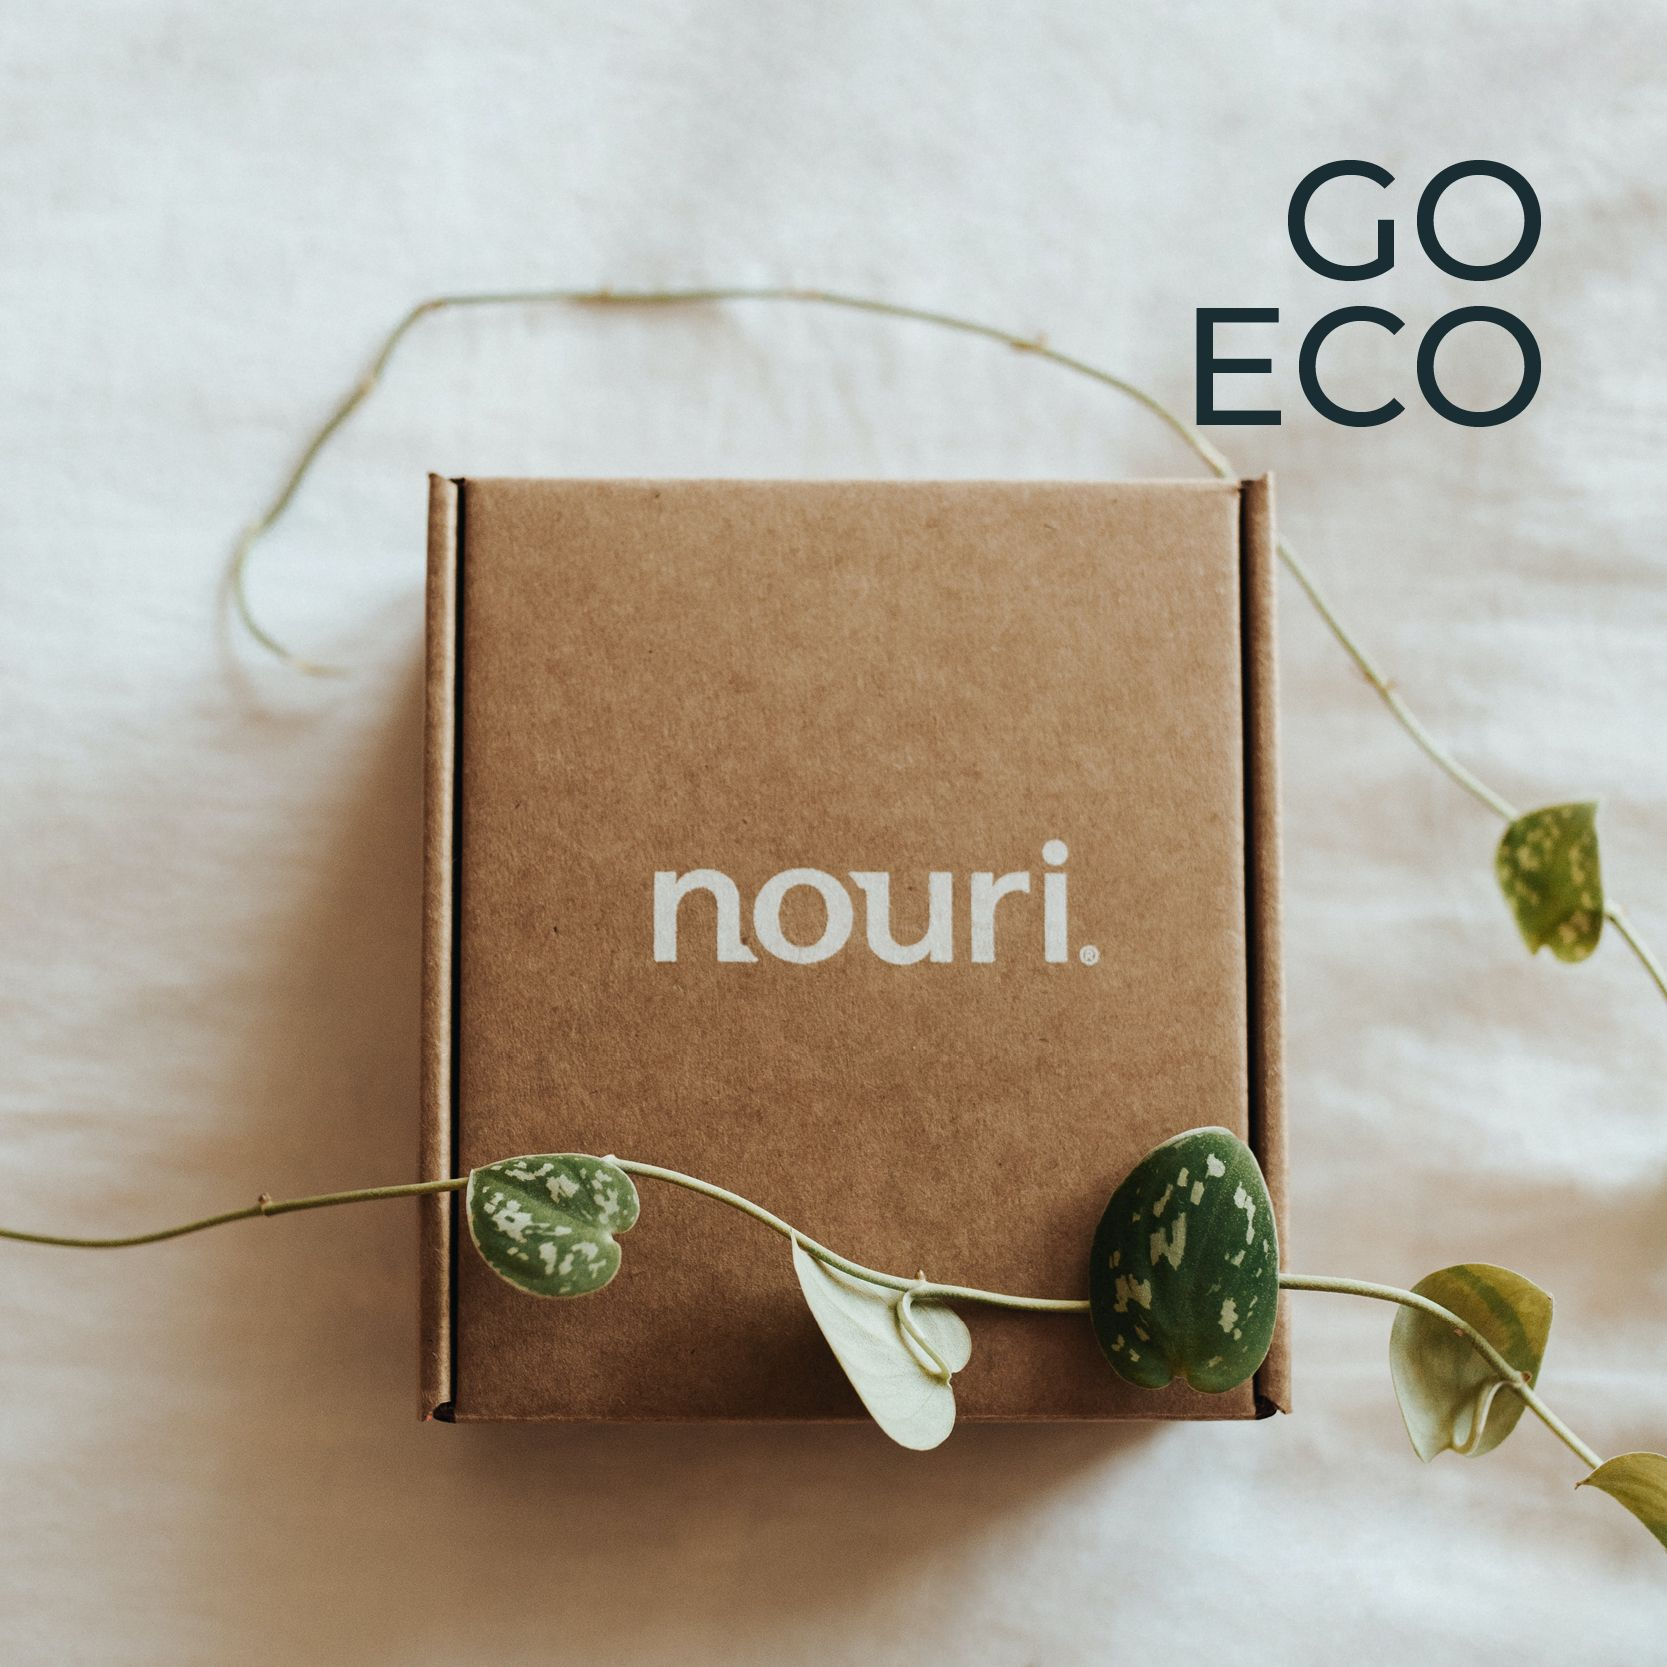 Pronto Packaging - Go Eco